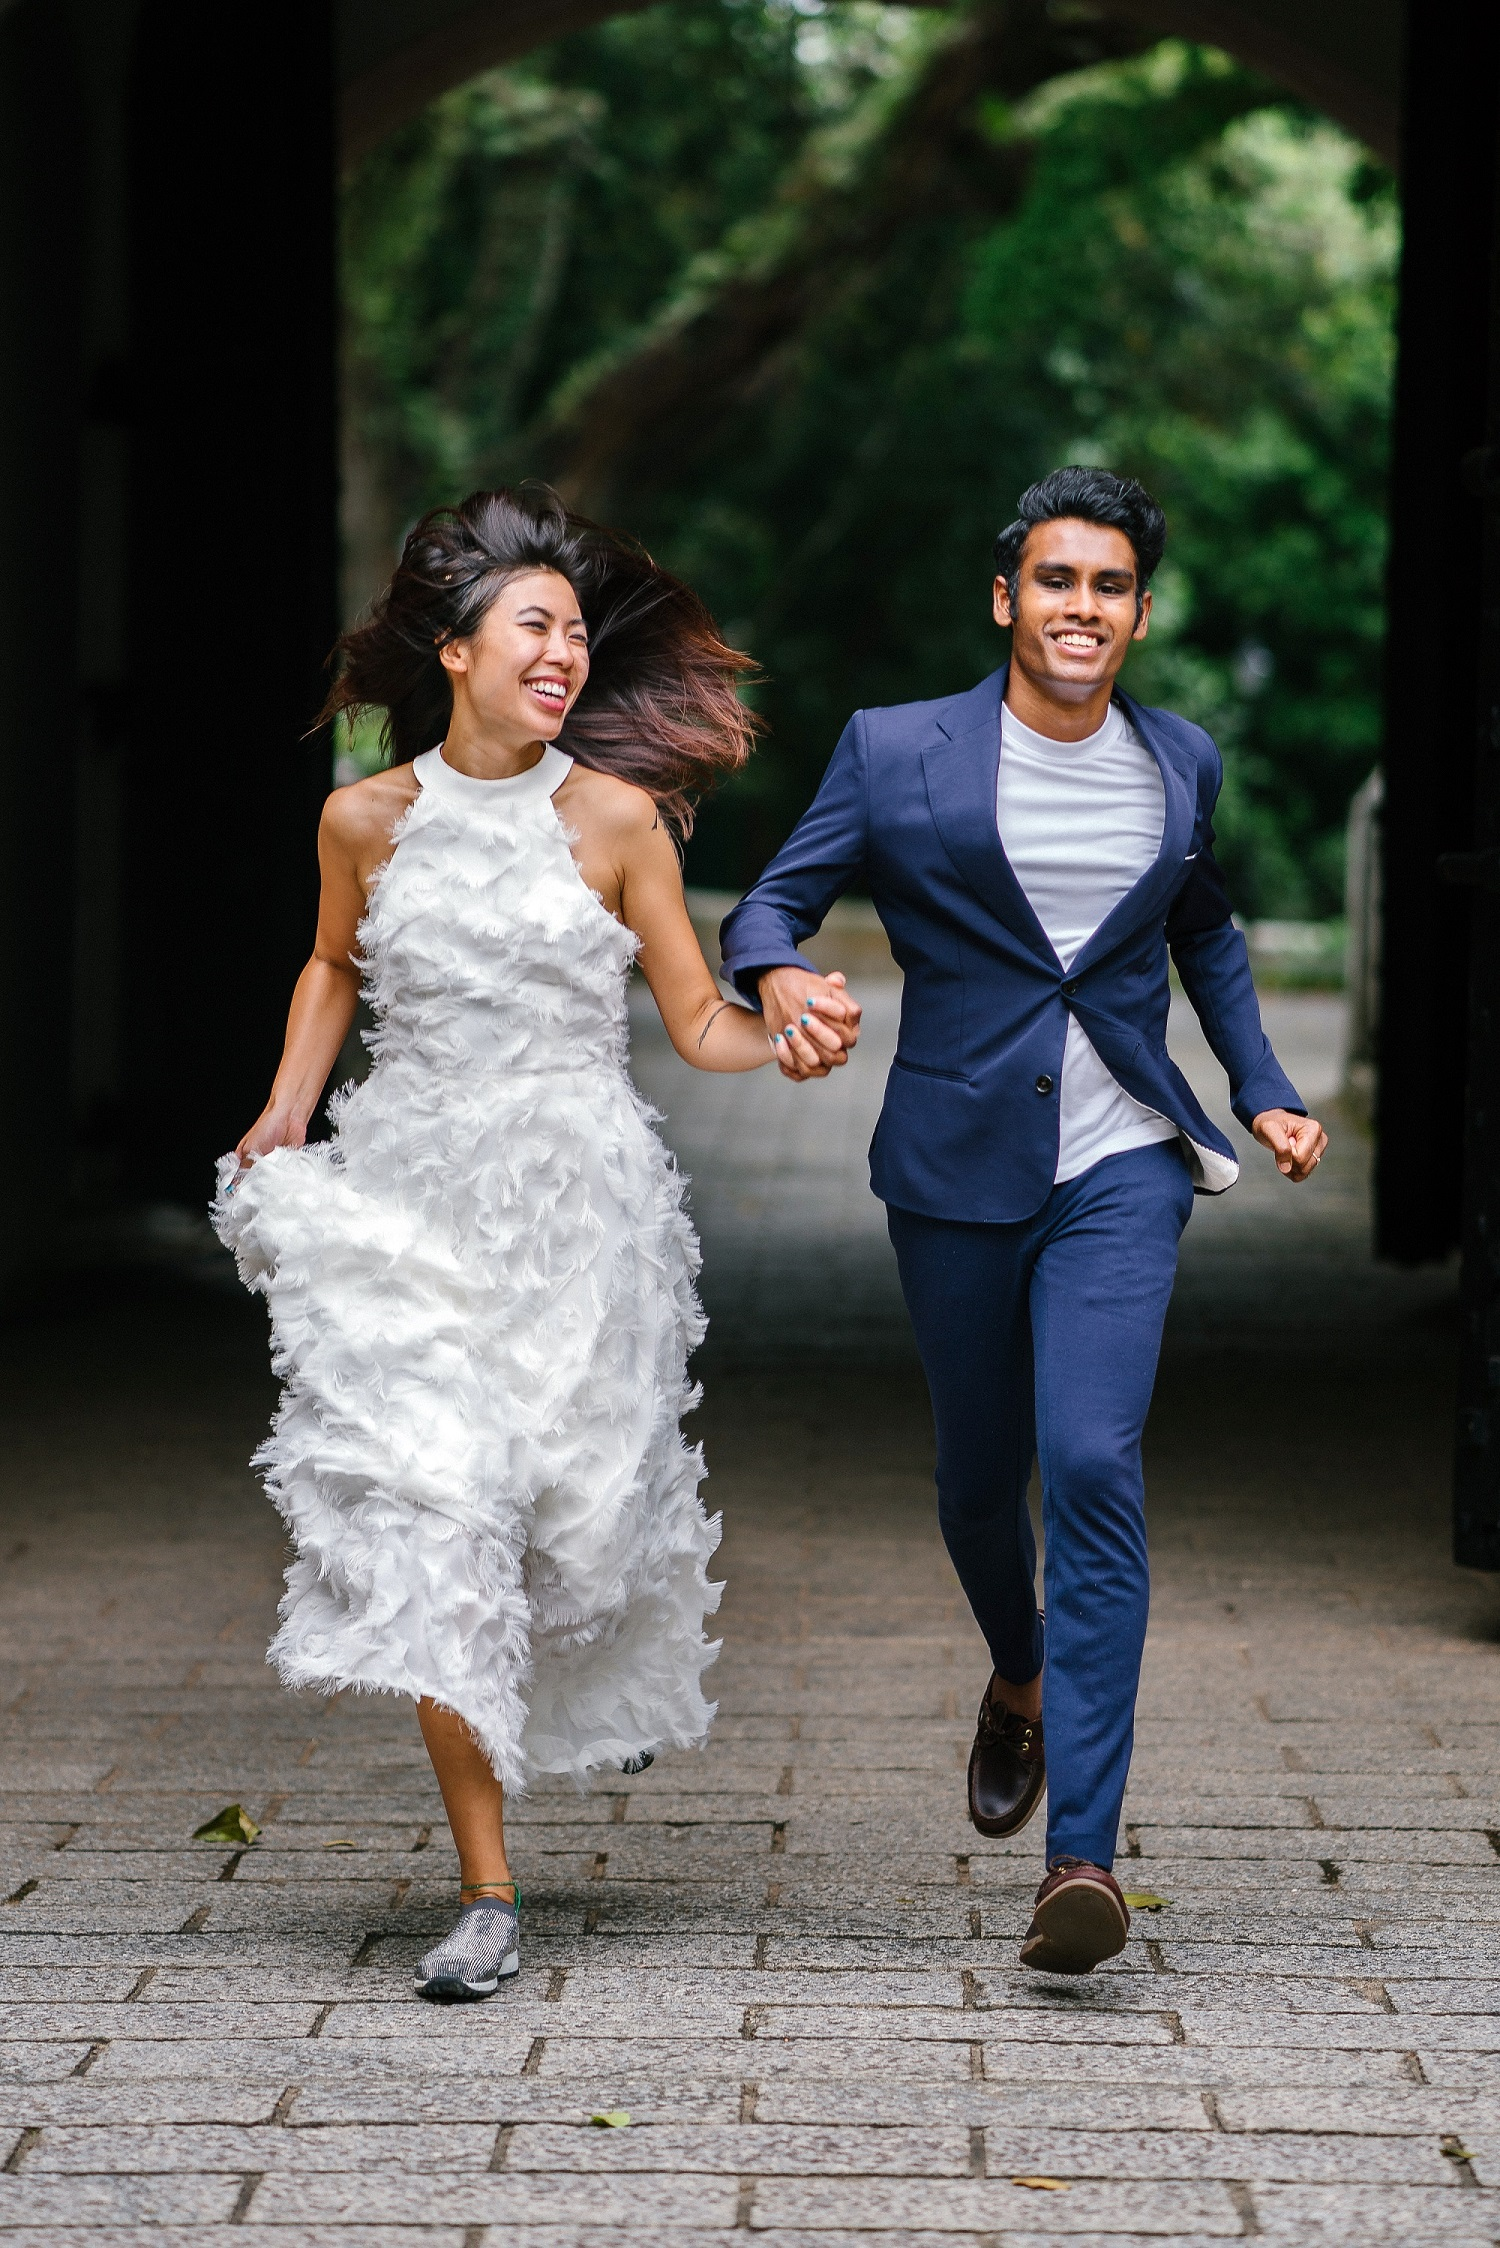 Wedding Reception Entrance Songs To Walk Into Your Reception In Style